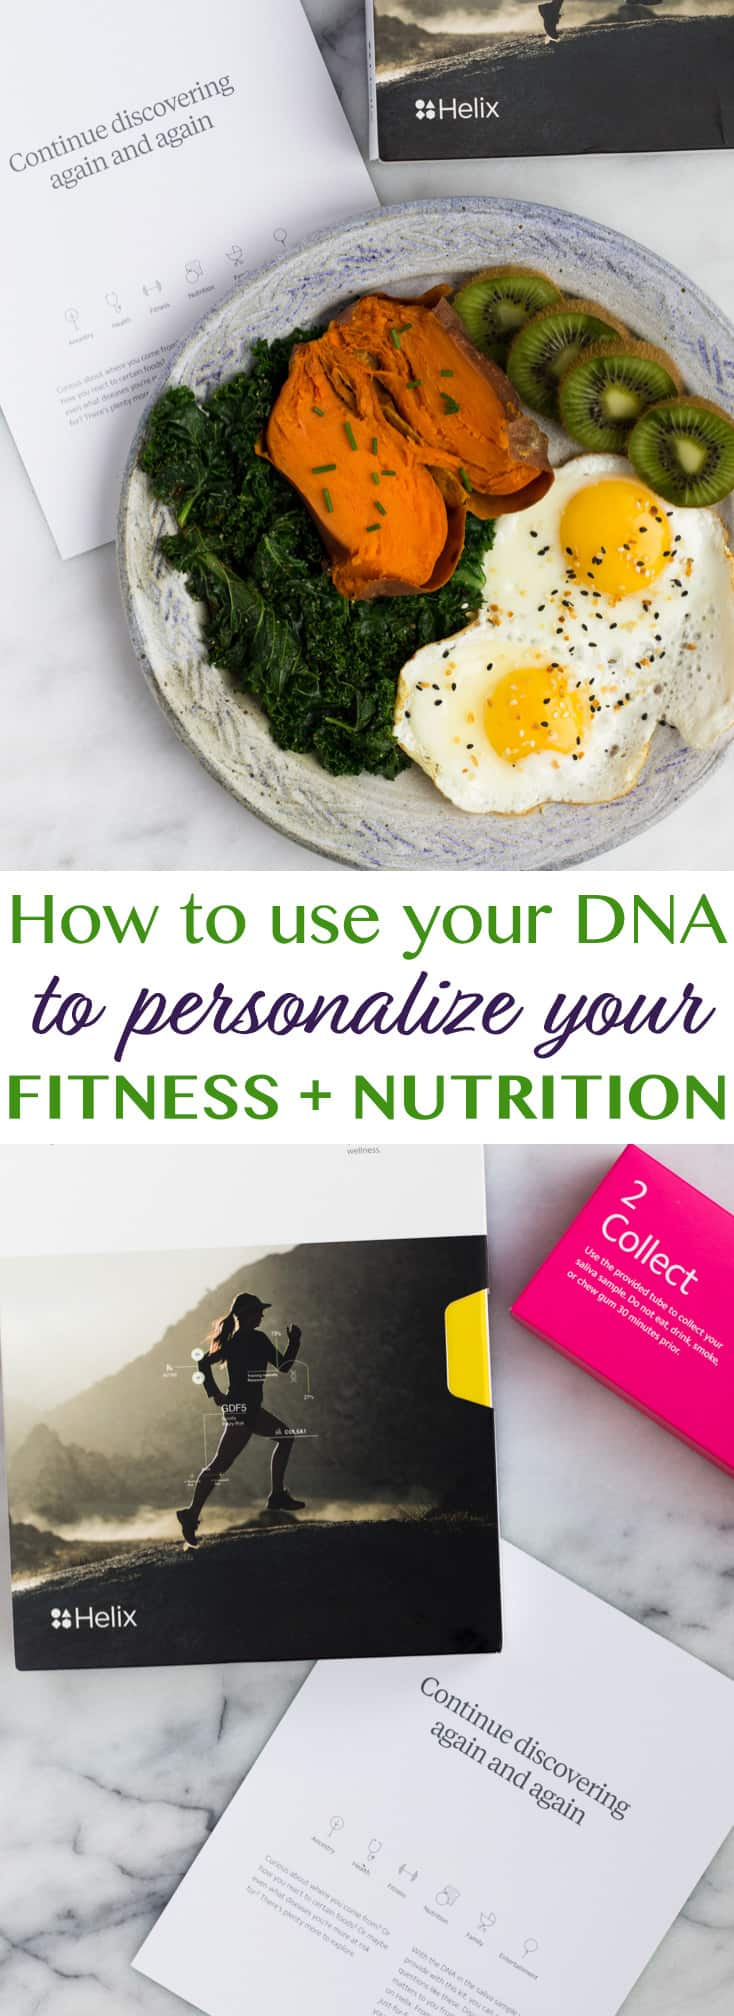 Helix - Using DNA to Personalize Fitness + Nutrition tohelp you reach your goals and the results you have been wanting! #ad #crackyourcode - Eat the Gains